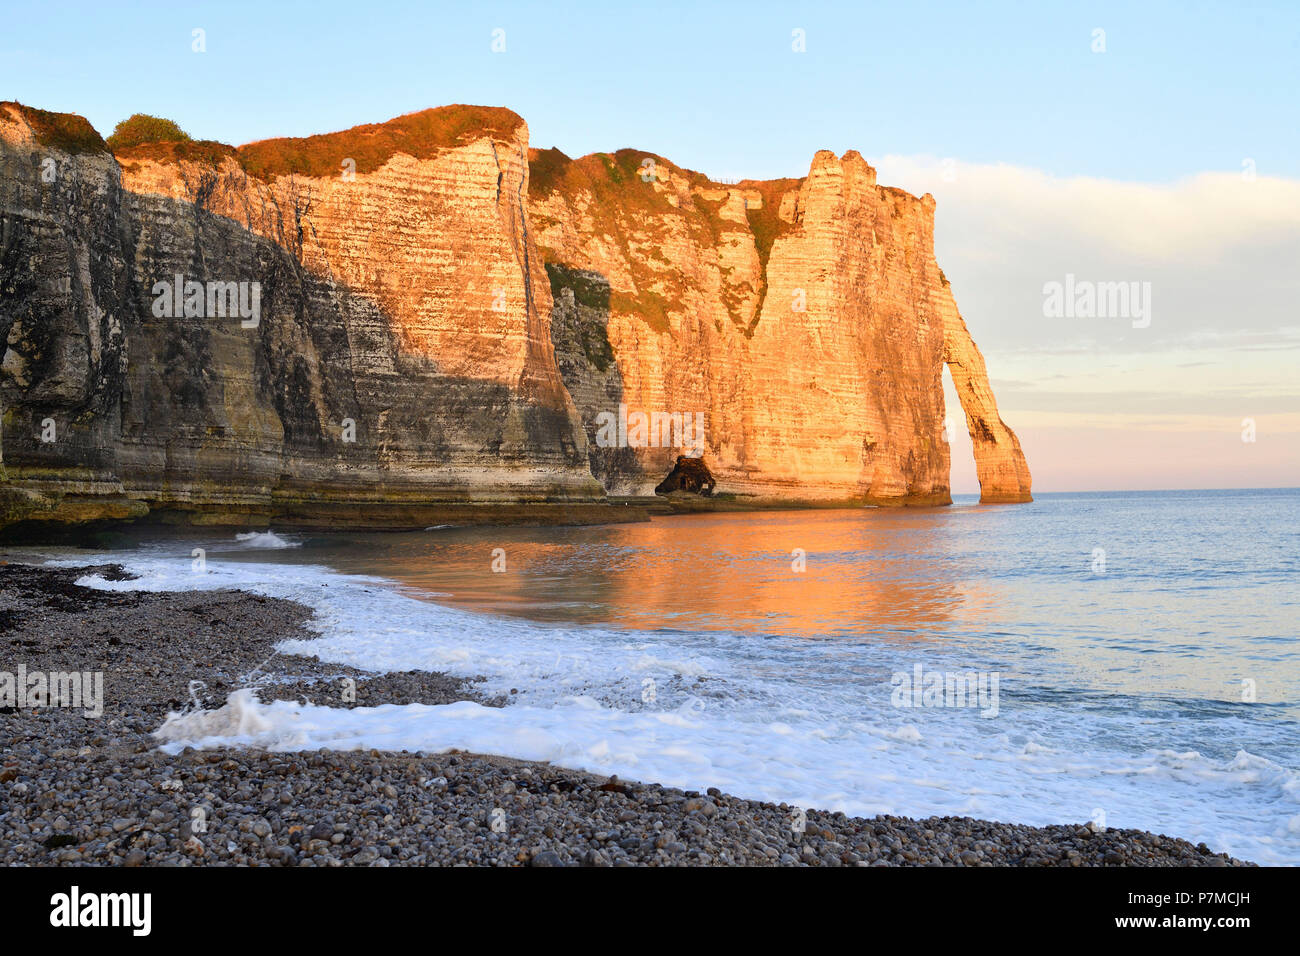 France, Seine Maritime, Caux, Alabaster Coast, Etretat, the beach, the Aval cliff, the Arch and the Aiguille (Needle) d'Aval - Stock Image